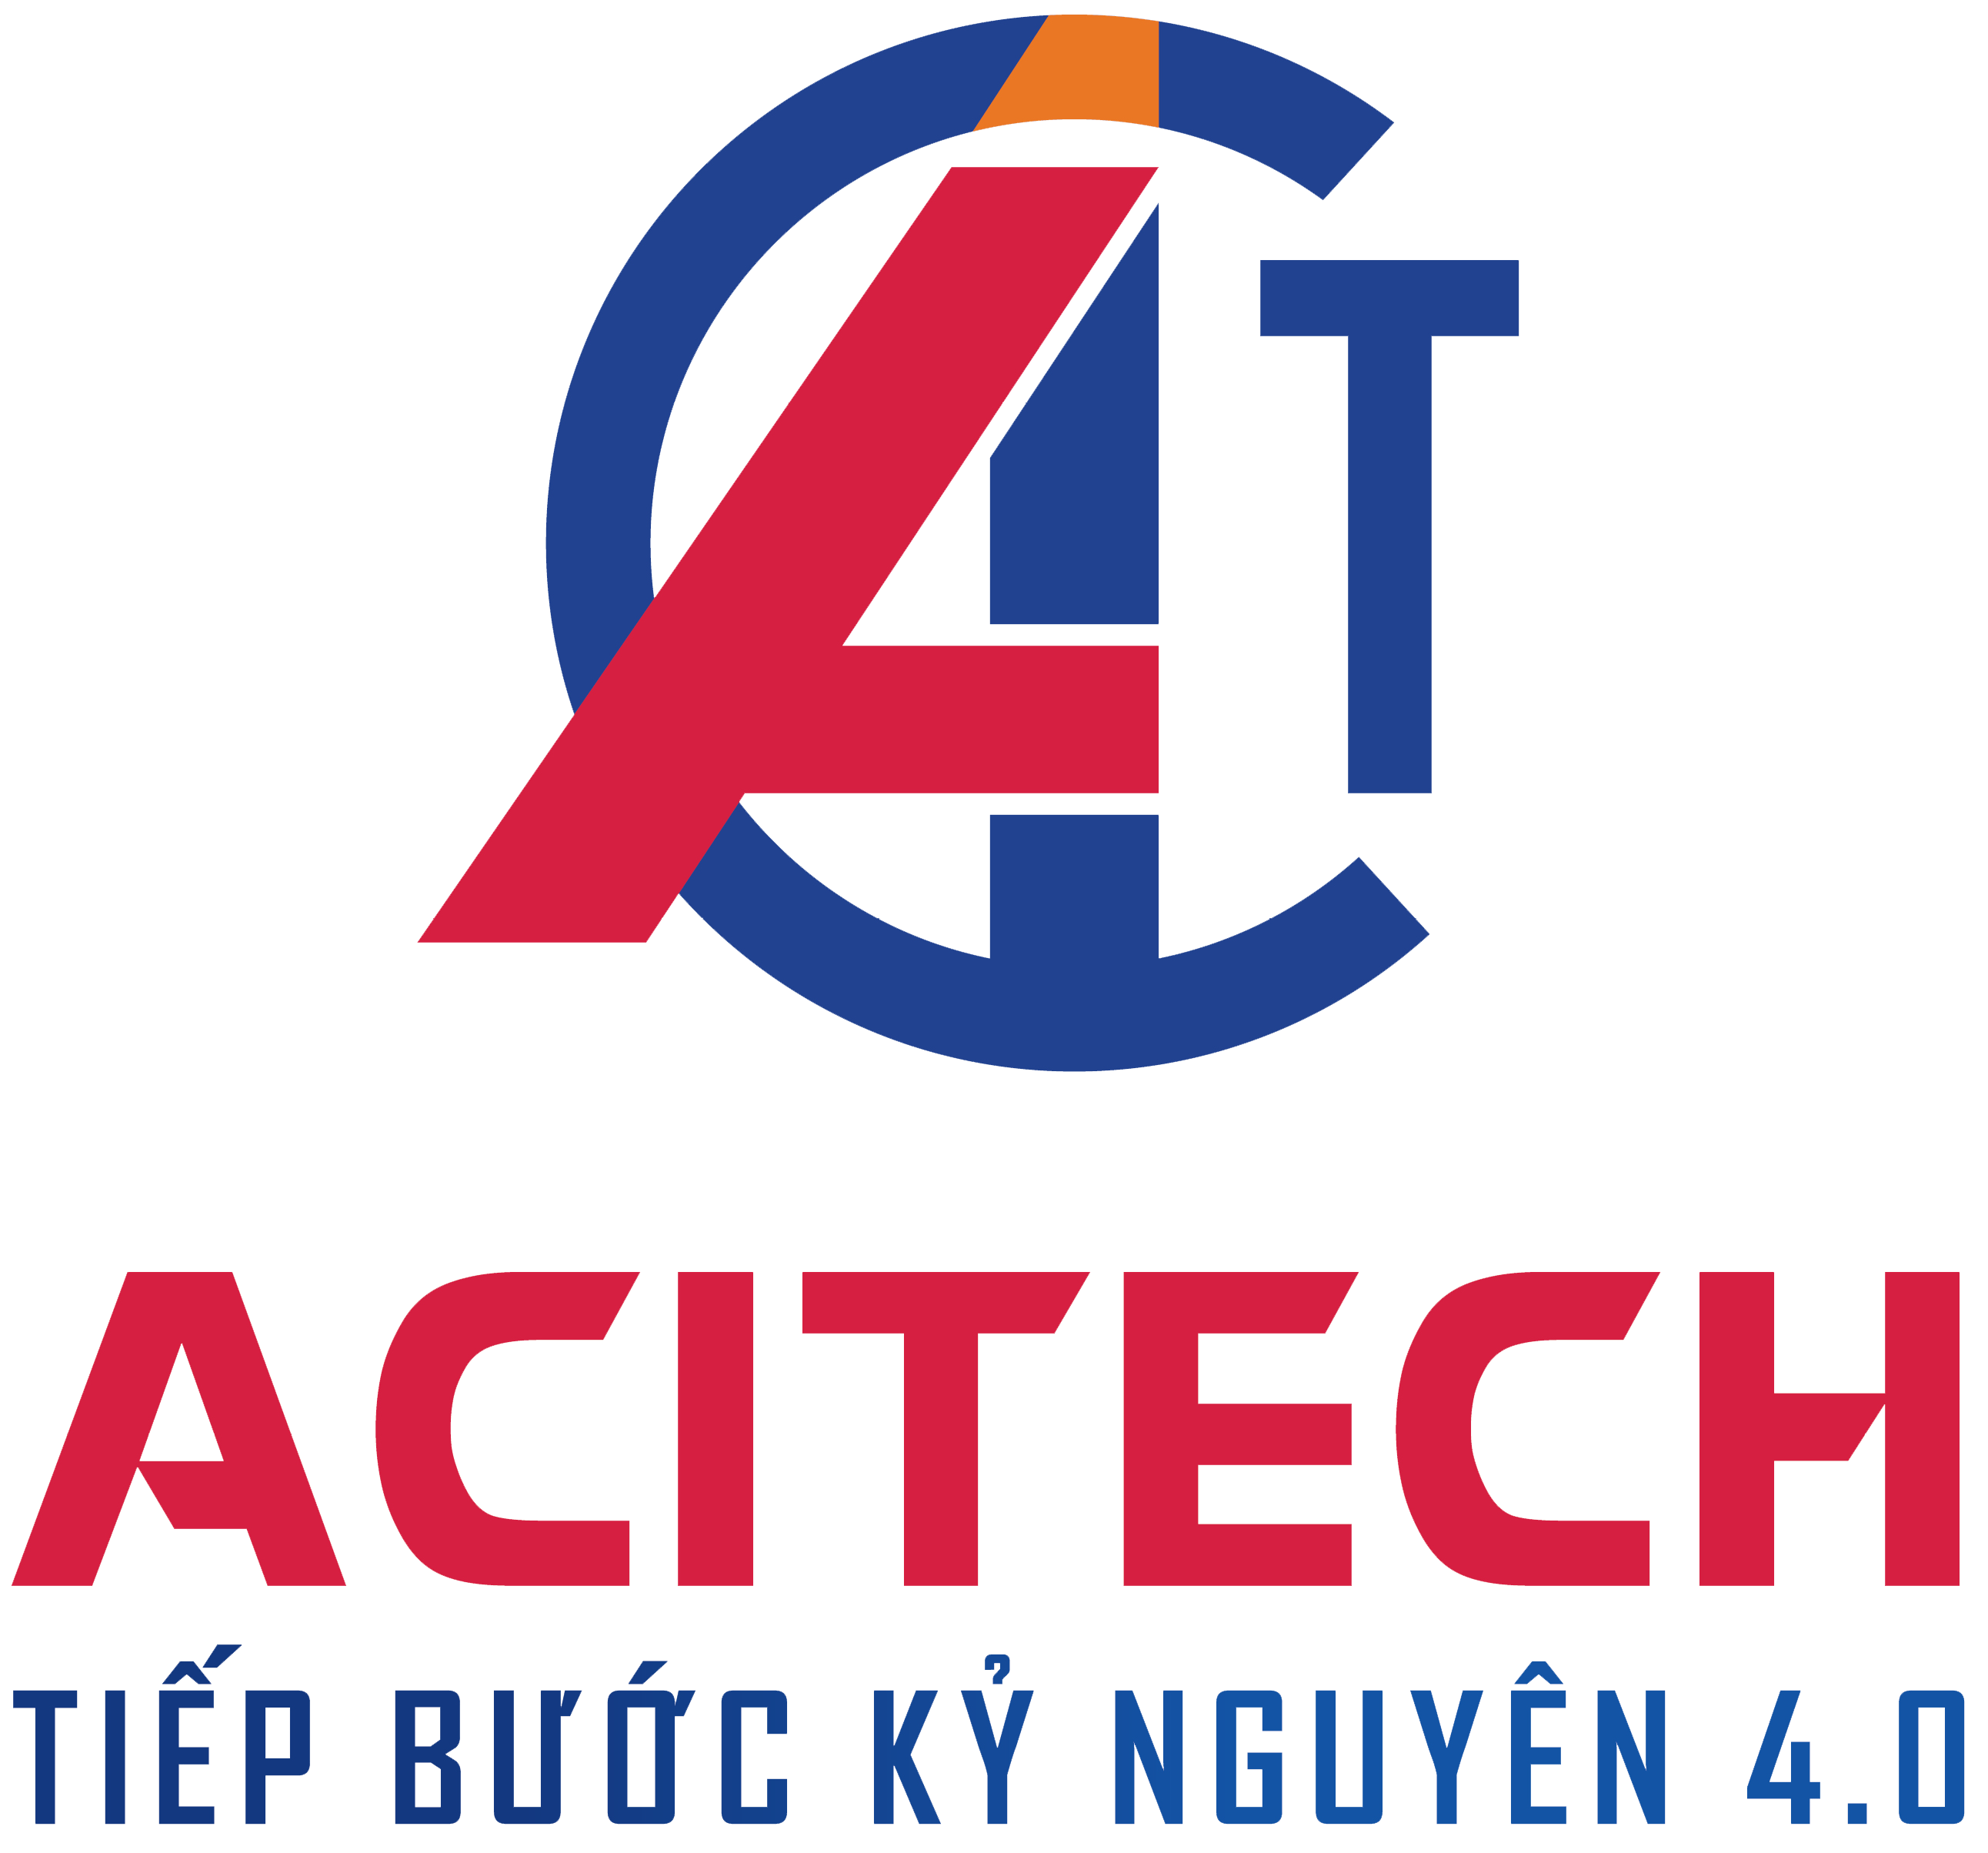 ACI-Tech-Logo-Offical-07-2.png